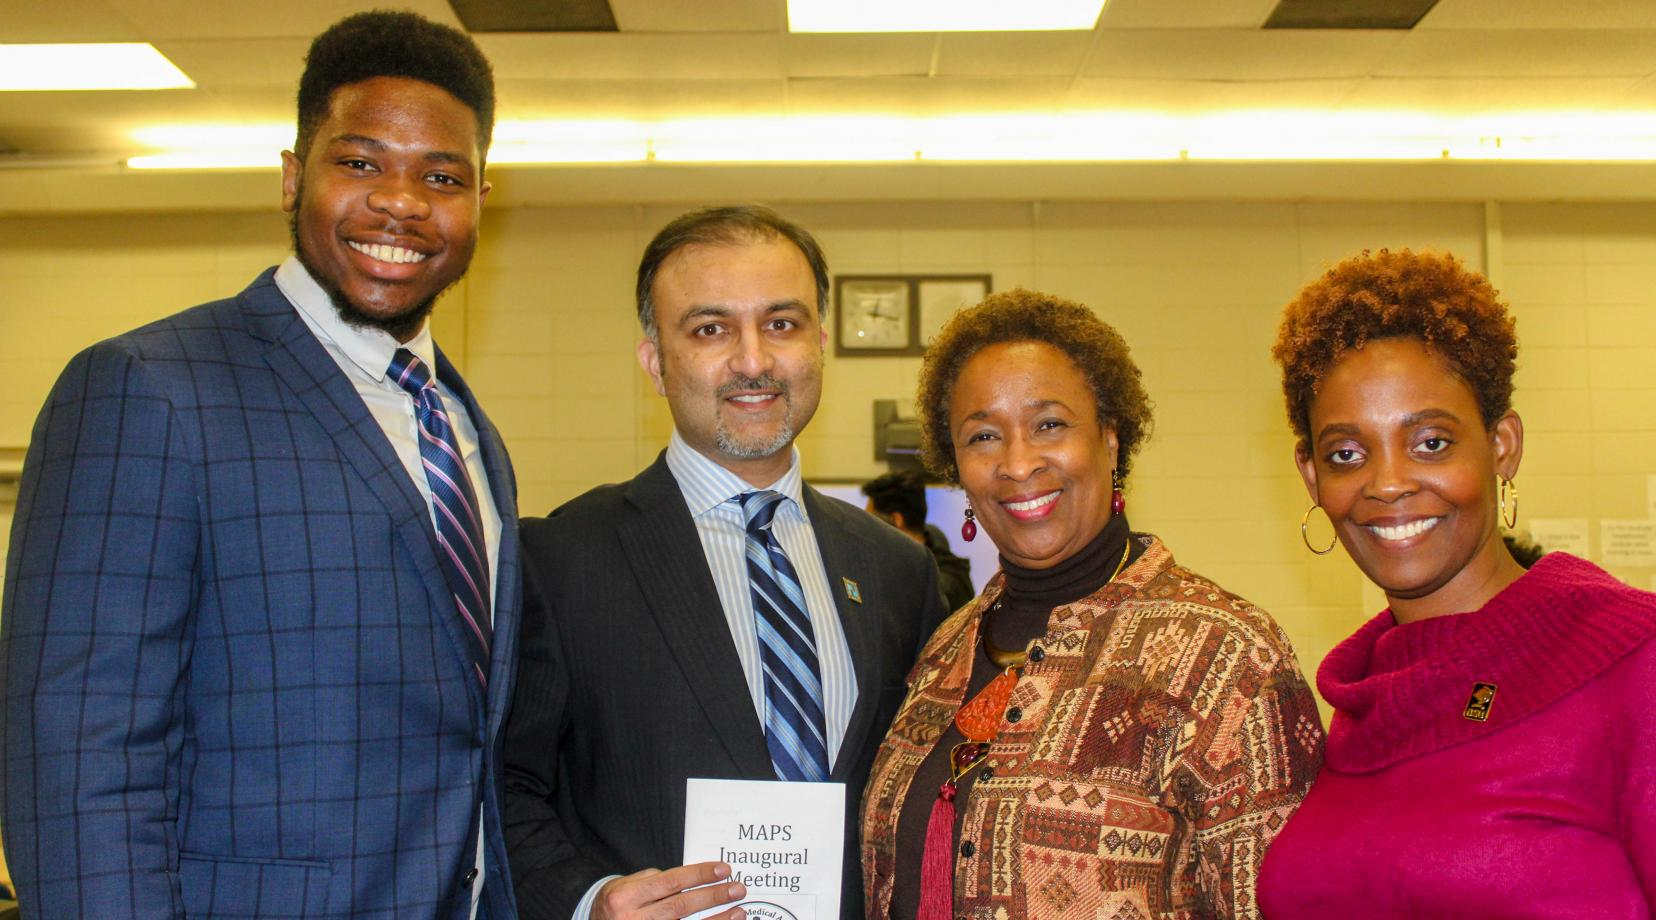 (L-r) Jared Jeffrey, biological sciences major, Dr. Omar Khan of Christiana Care, Dr. Marsha Horton, Dean of the College of Health & Behavioral Sciences, and Dr. Jacqueline Washington, Associate Dean of the same college, pose for a photo after the recent inaugural meeting of the University's Minority Association of Pre-medical Students